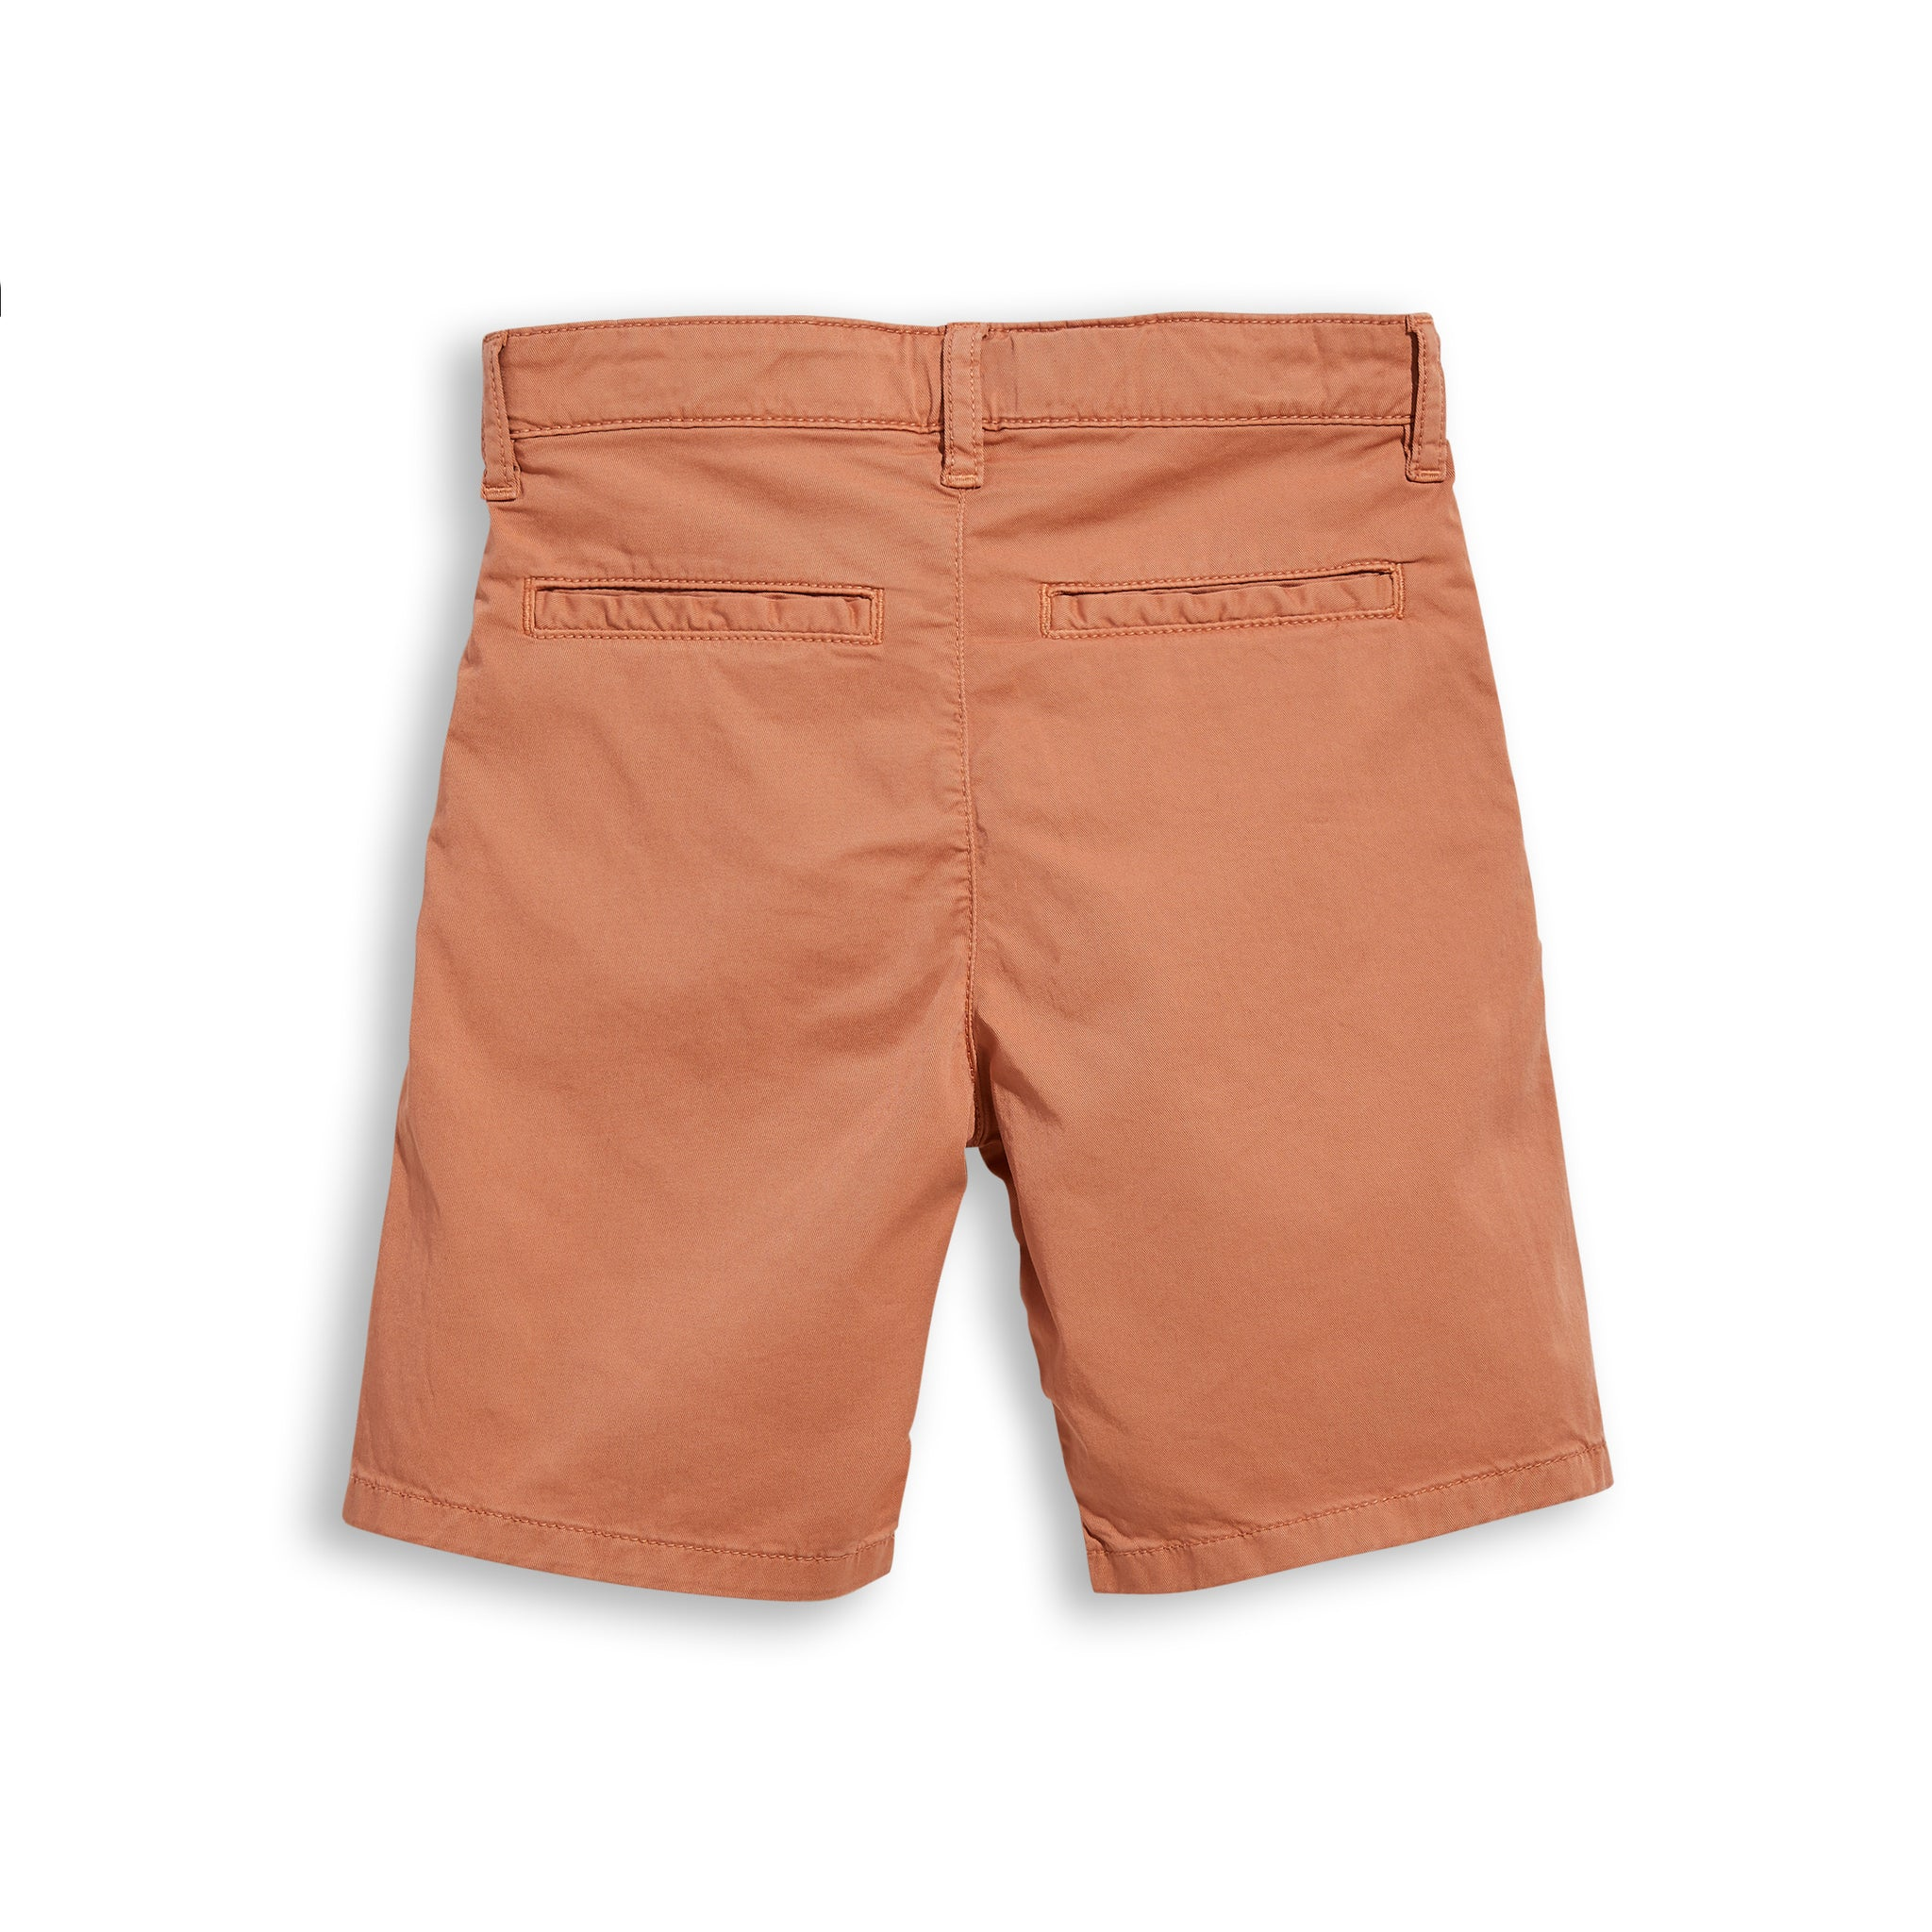 BIRDMAN Old Sienna - Chino Fit Bermuda 2